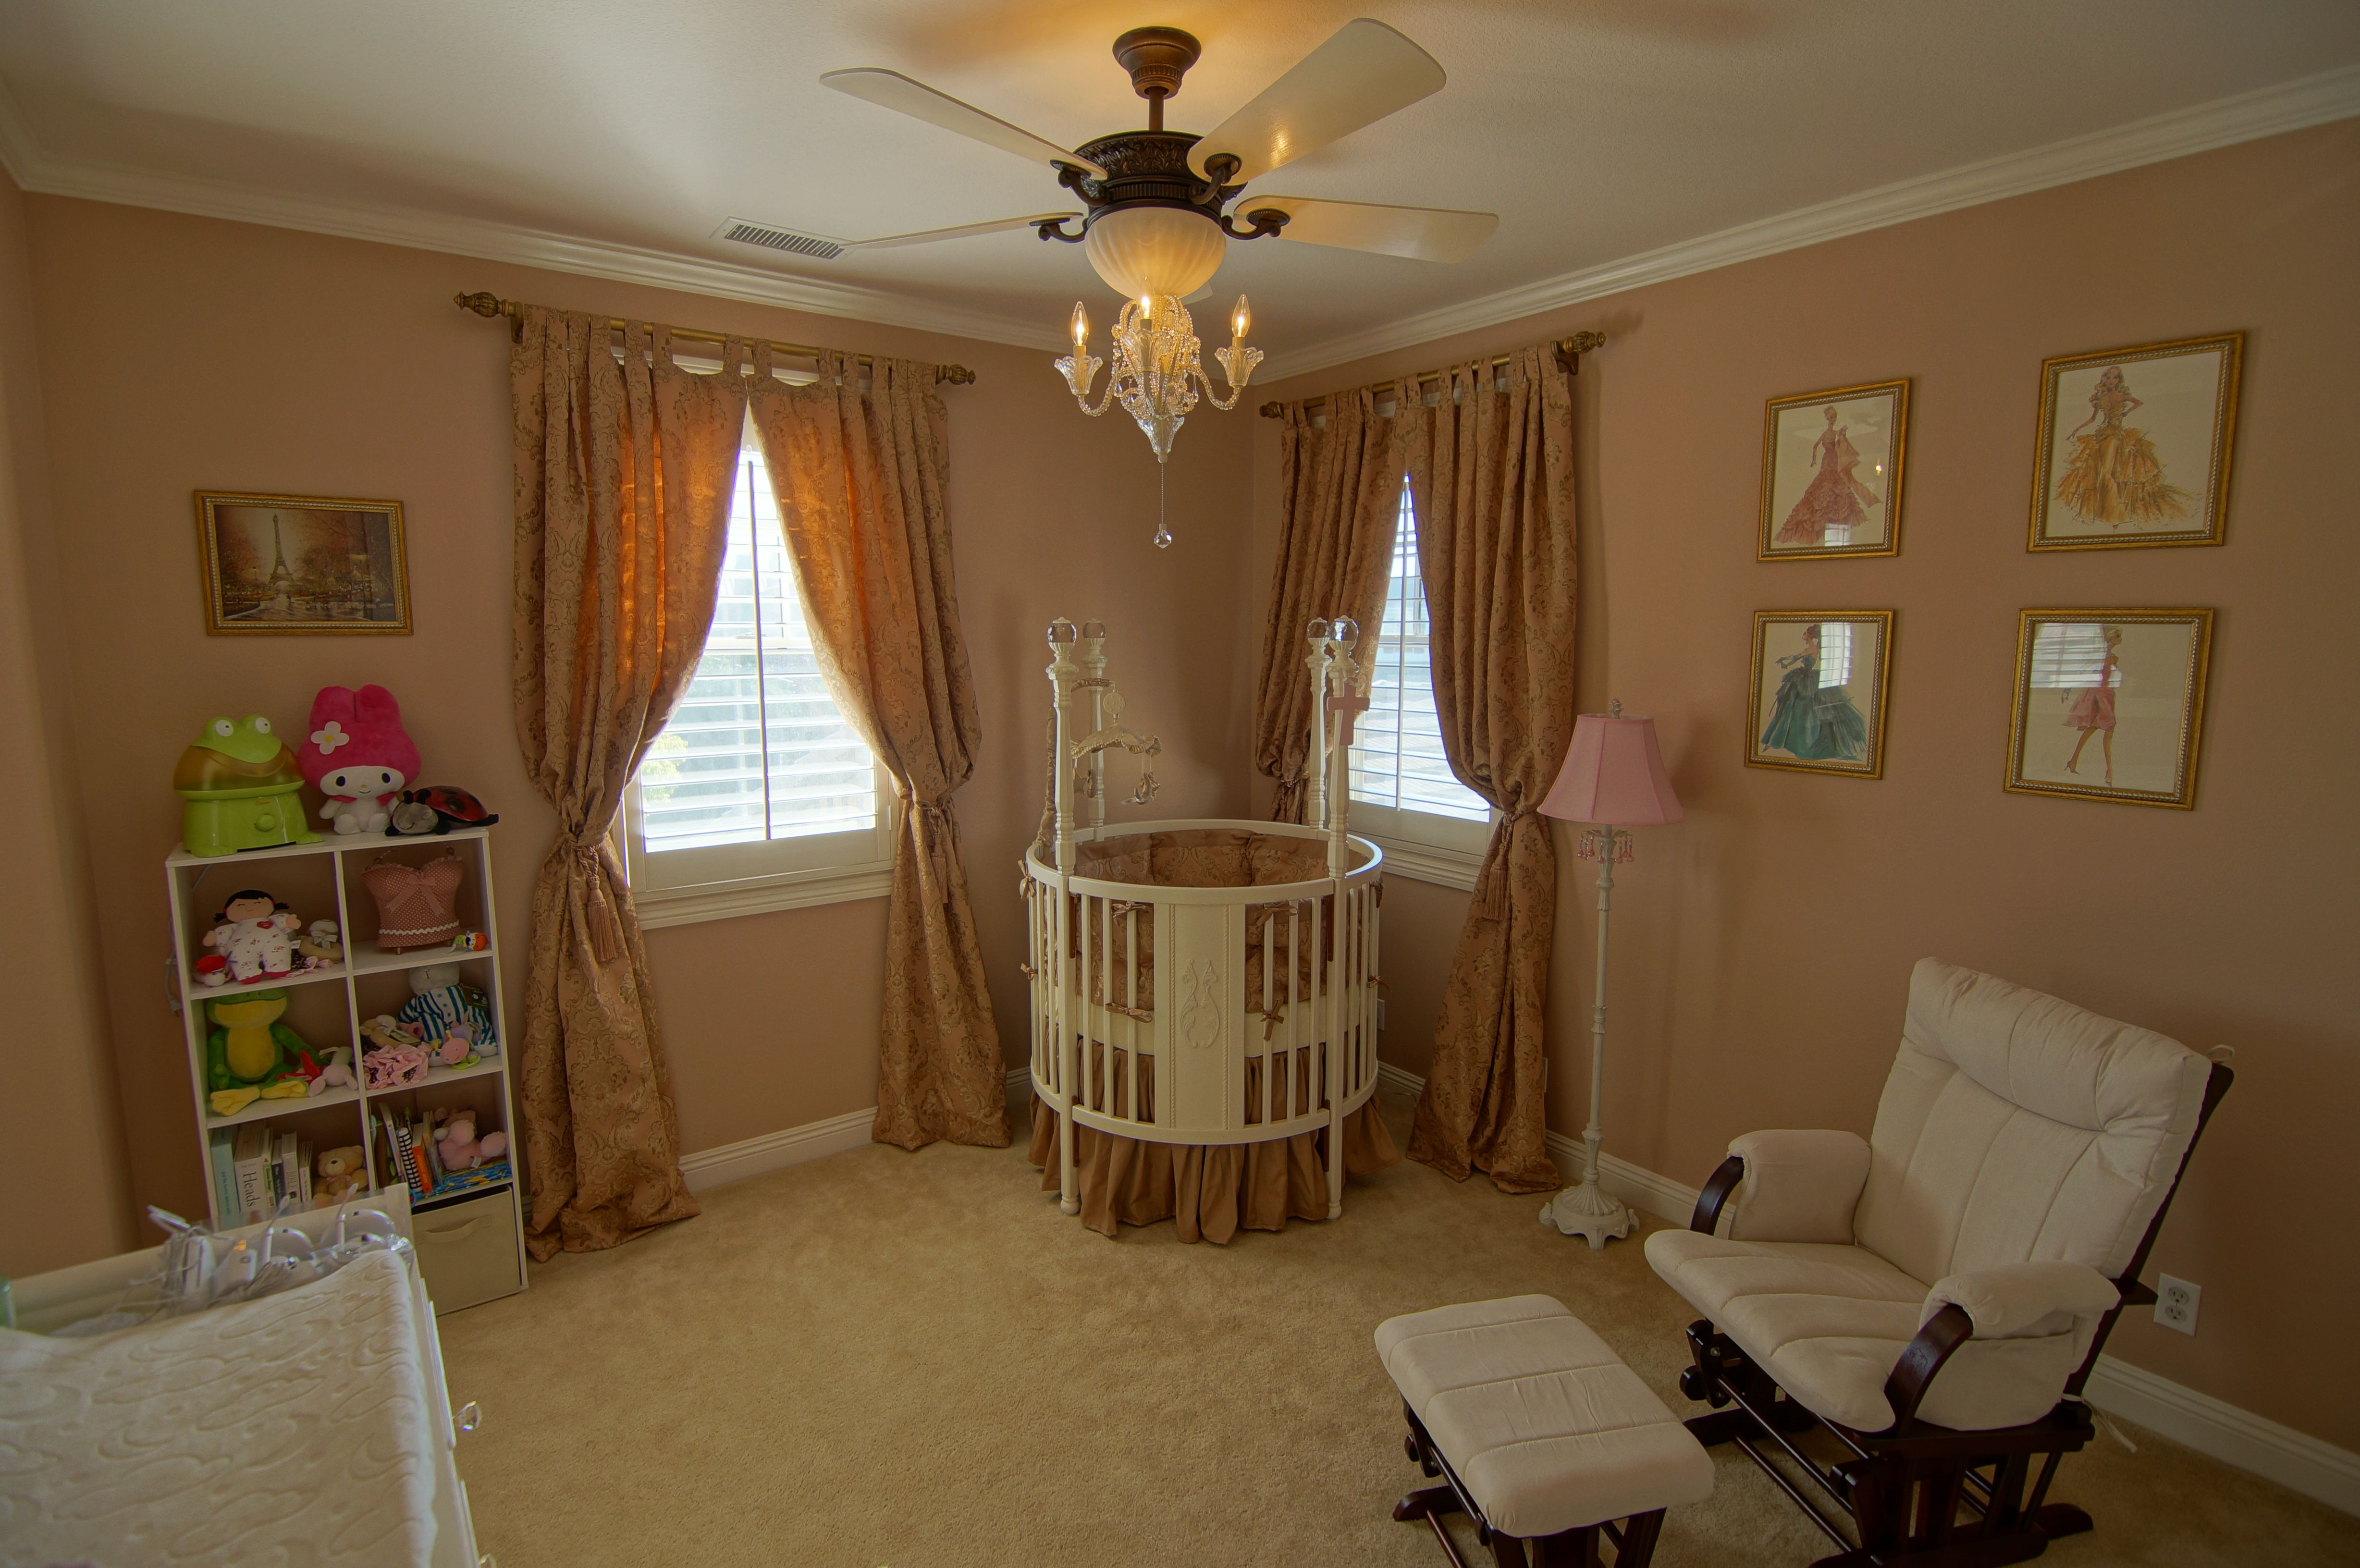 Baby Lily S Room With Round Crib Favorite Places